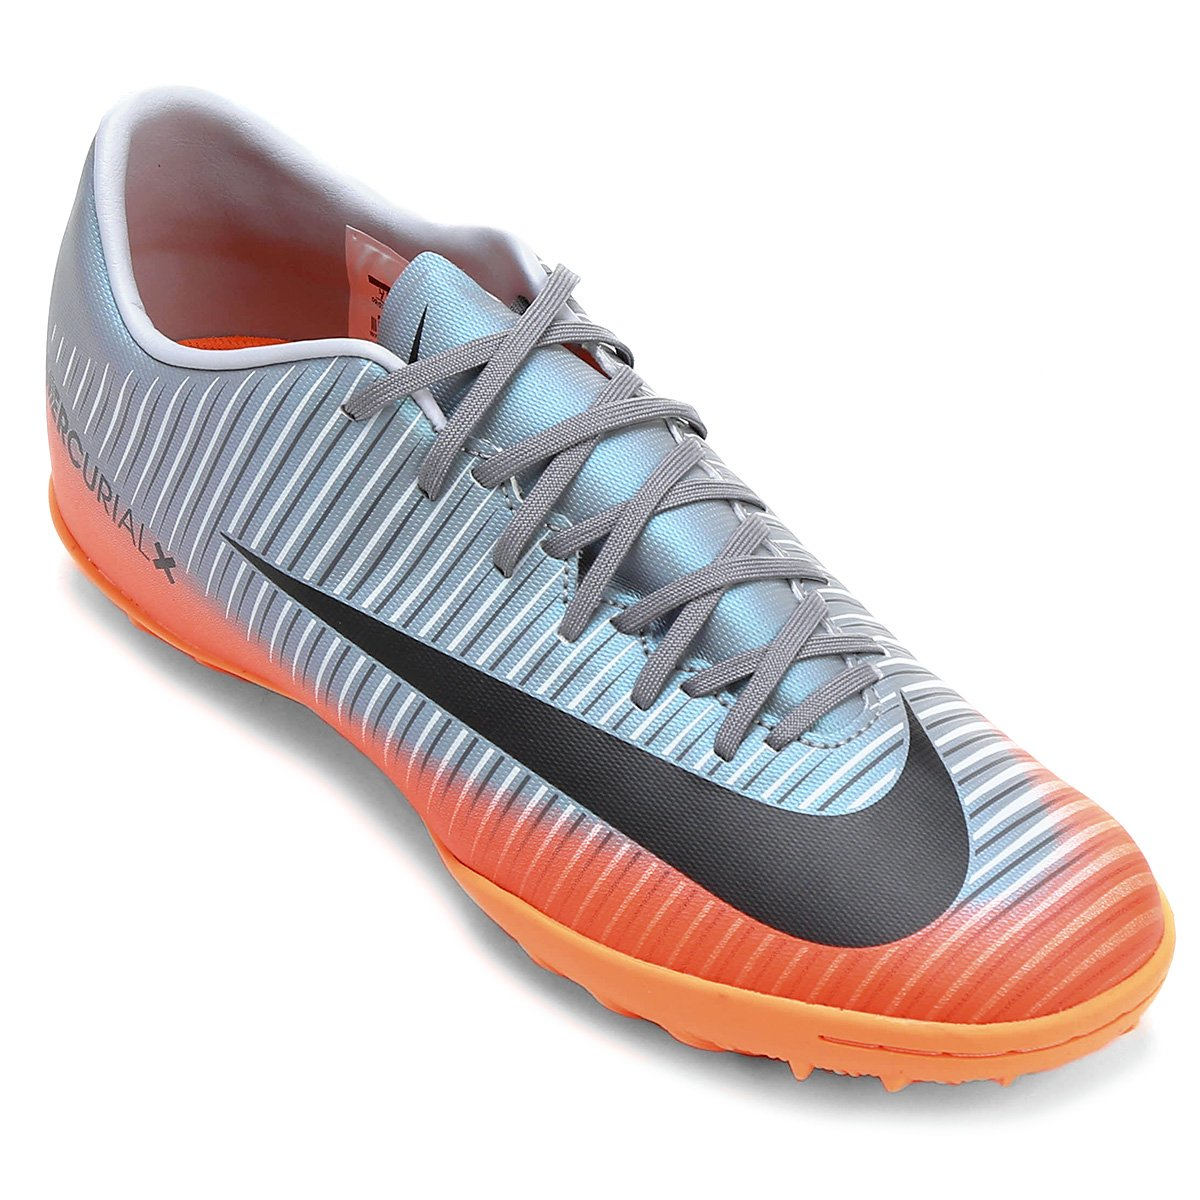 cfa895db47 ... free shipping chuteira society nike mercurial x victory 6 cr7 tf  masculina compre agora netshoes ab773 ...